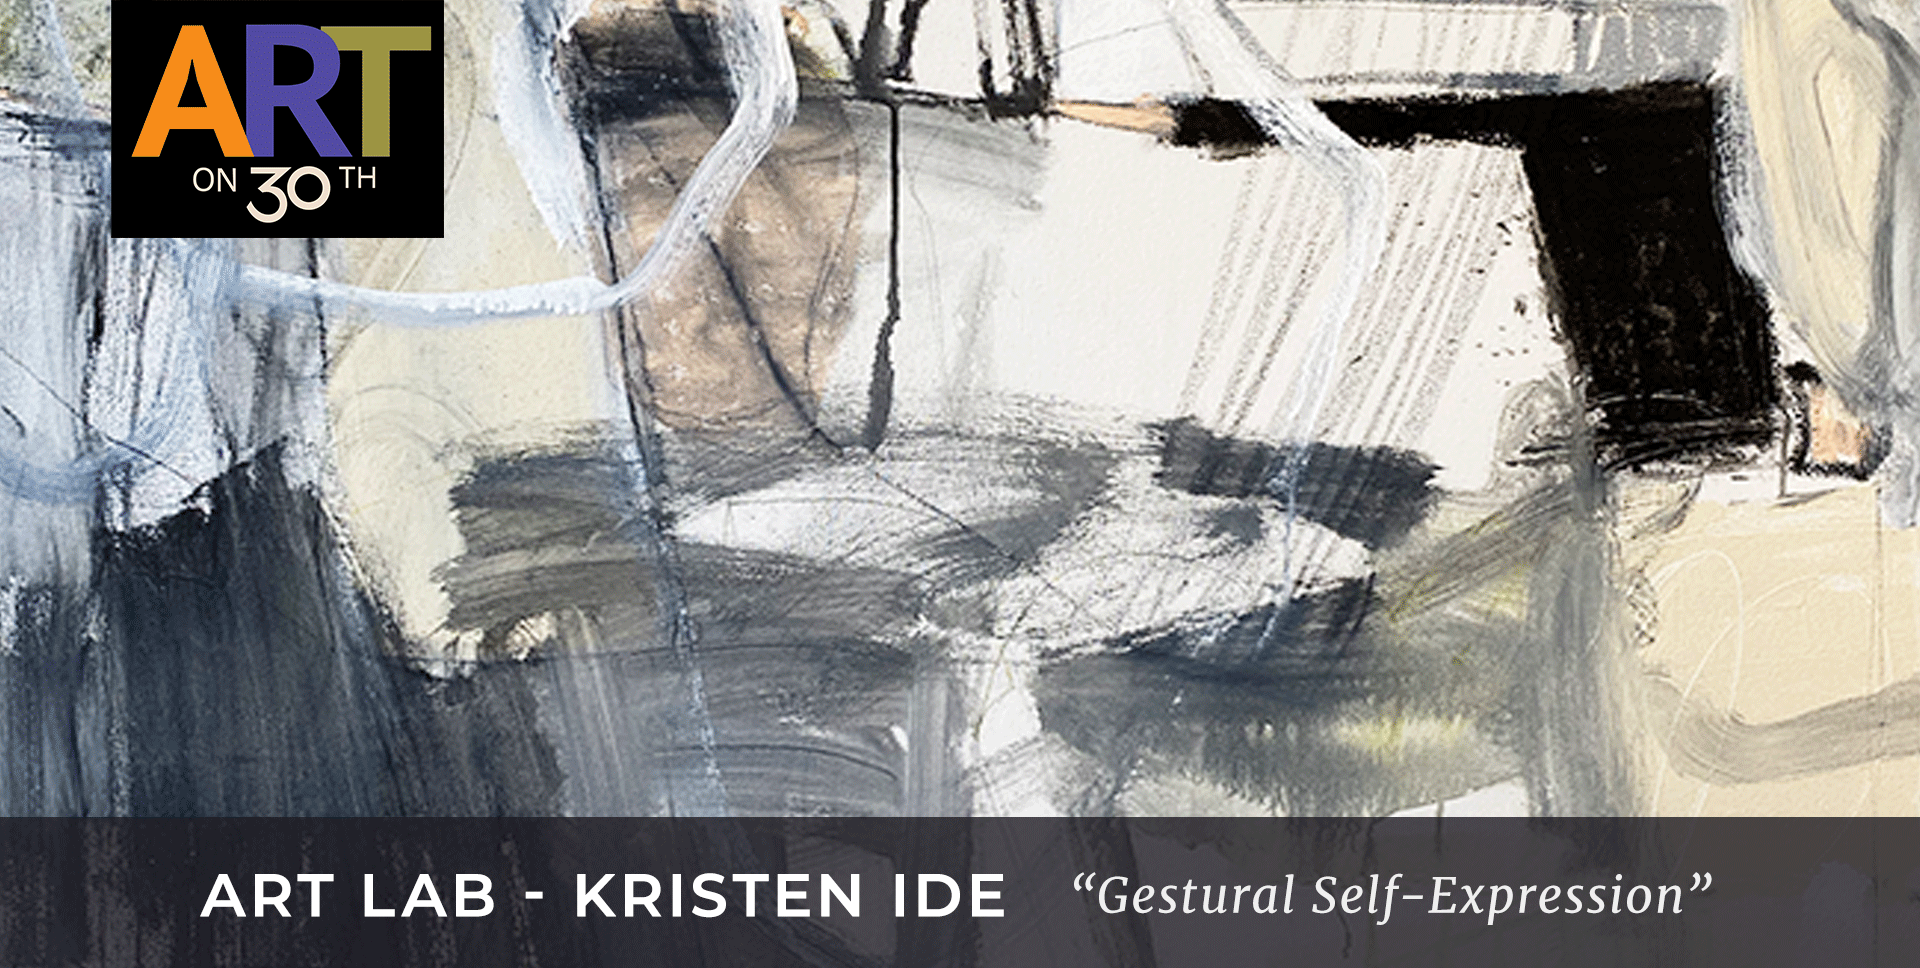 WED - Gestural Self-Expression with Kristen Ide